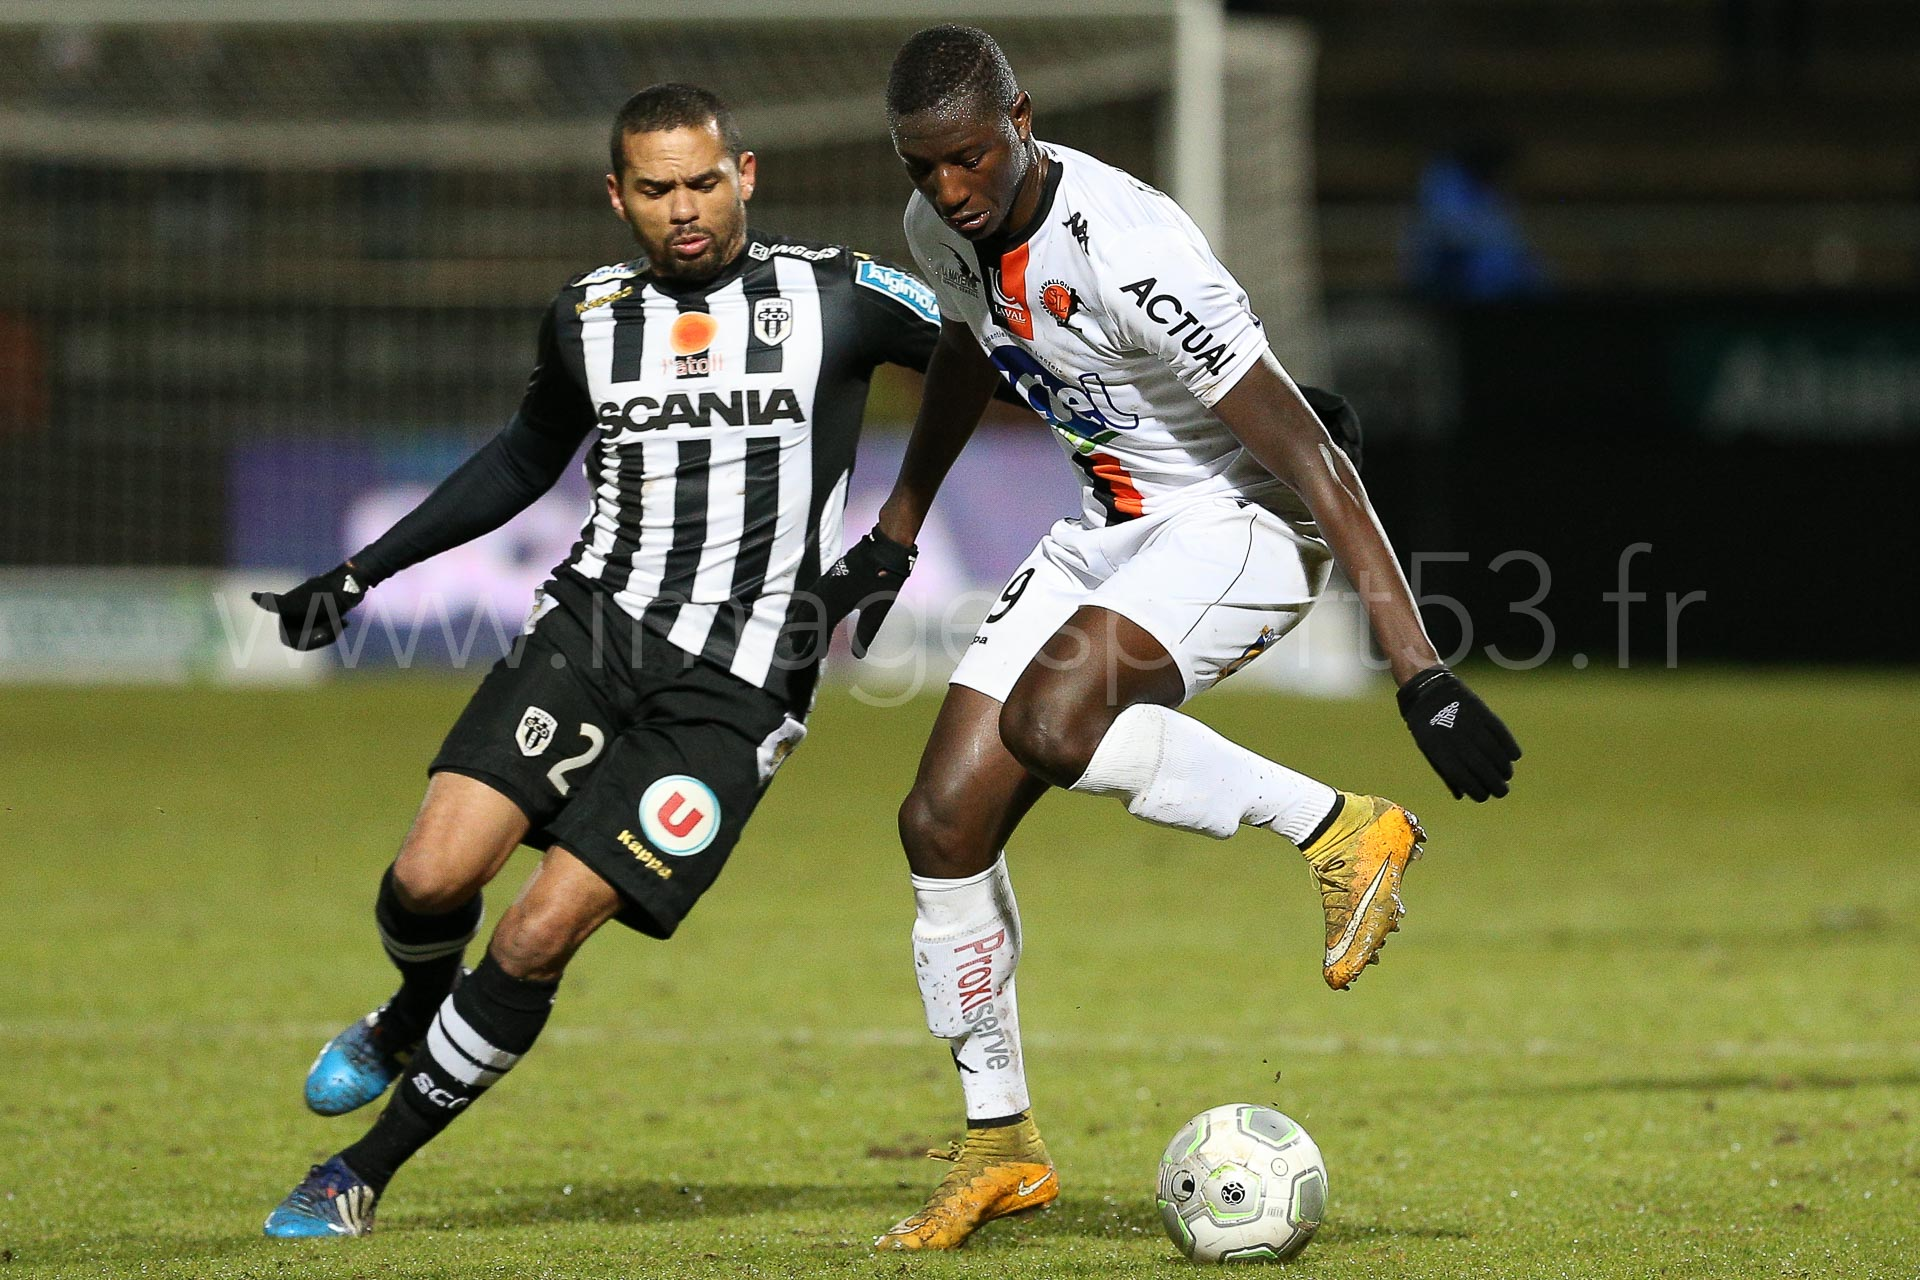 NG-Ligue2-1415-J25-Angers-Laval_7